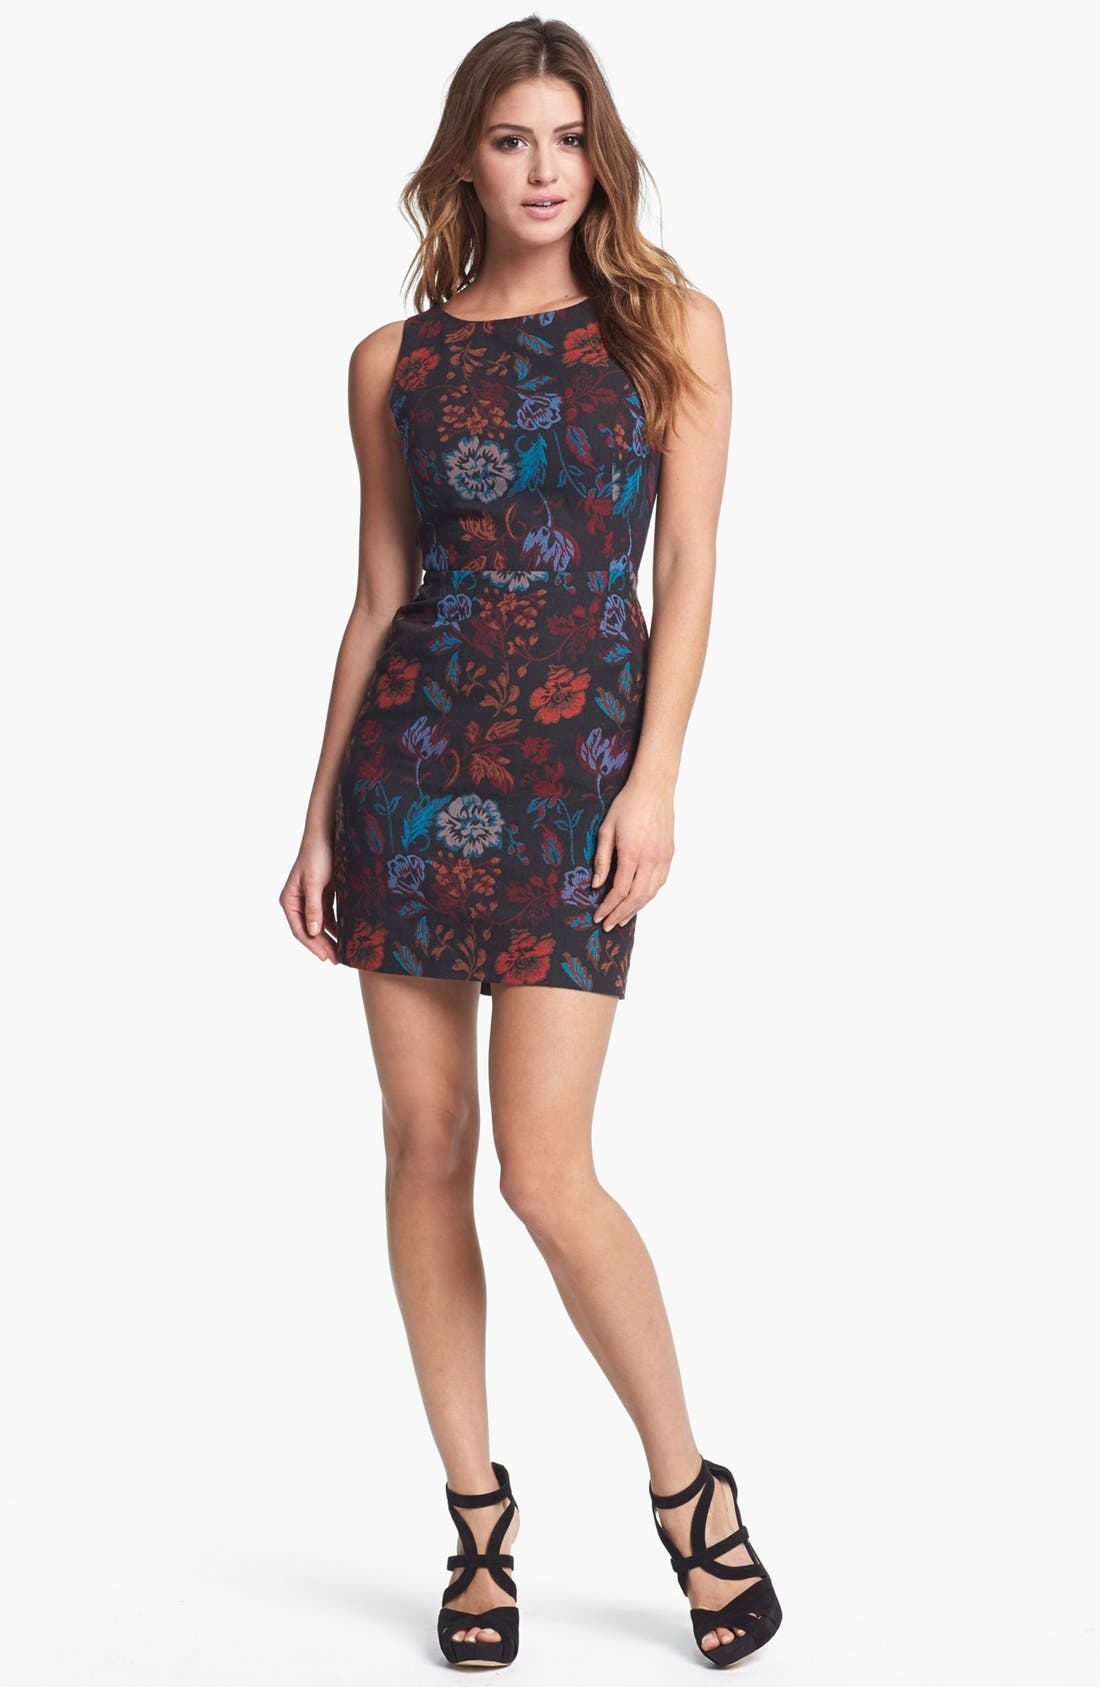 Alternate Image 1 Selected - BB Dakota 'Leona' Brocade Cotton Sheath Dress